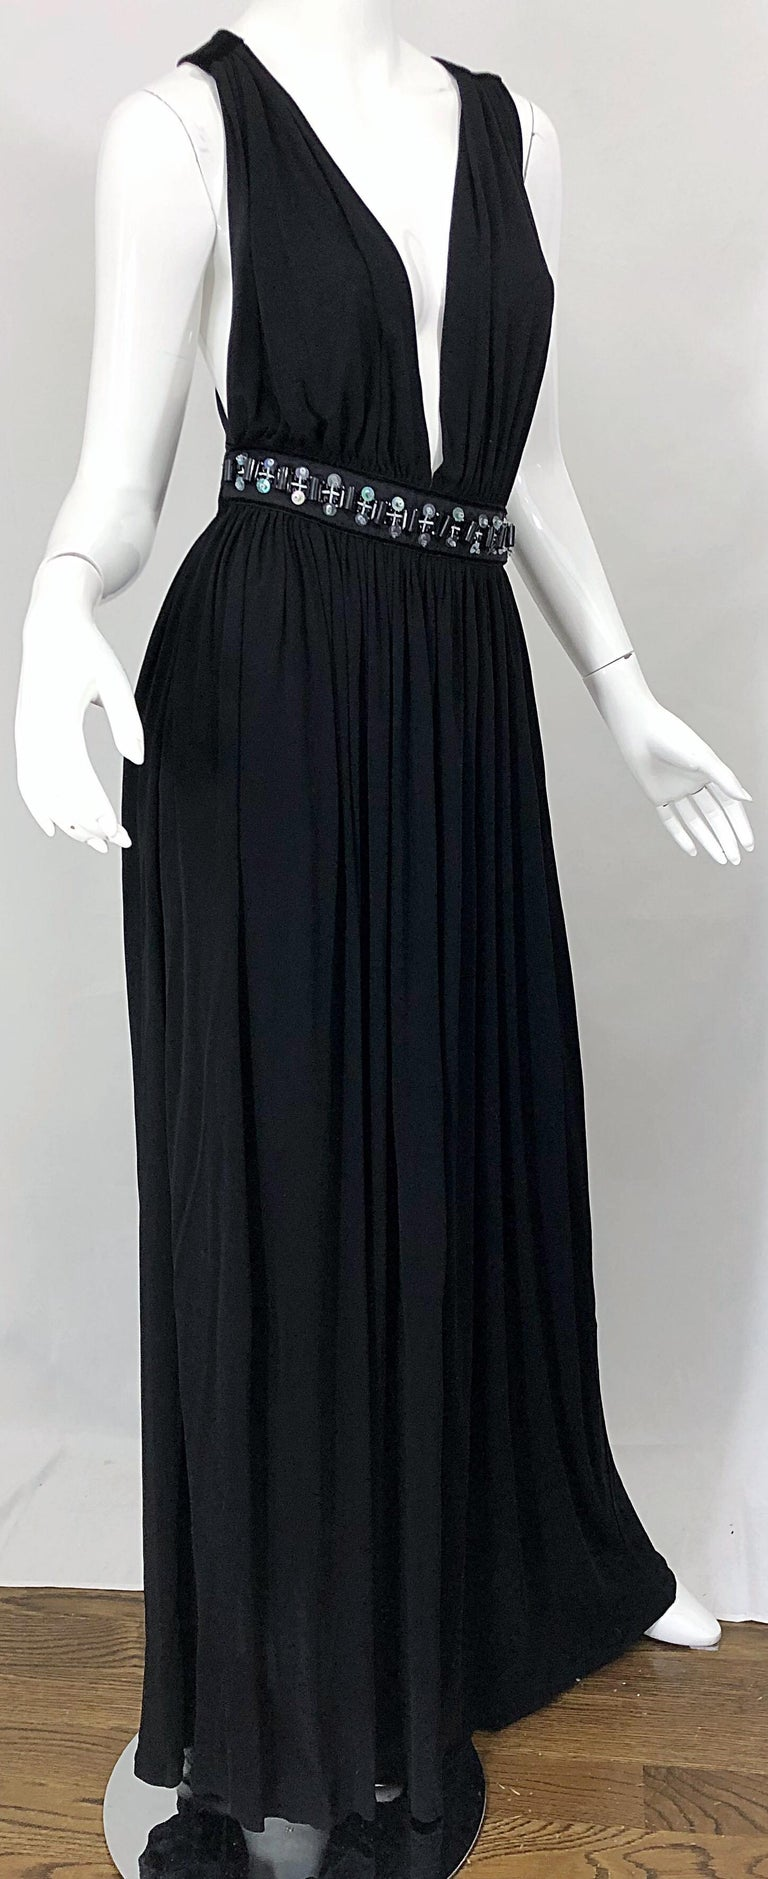 1990s Dolce & Gabbana D&G Black Plunging Sexy Beaded Sleeveless Vintage 90s Gown For Sale 3